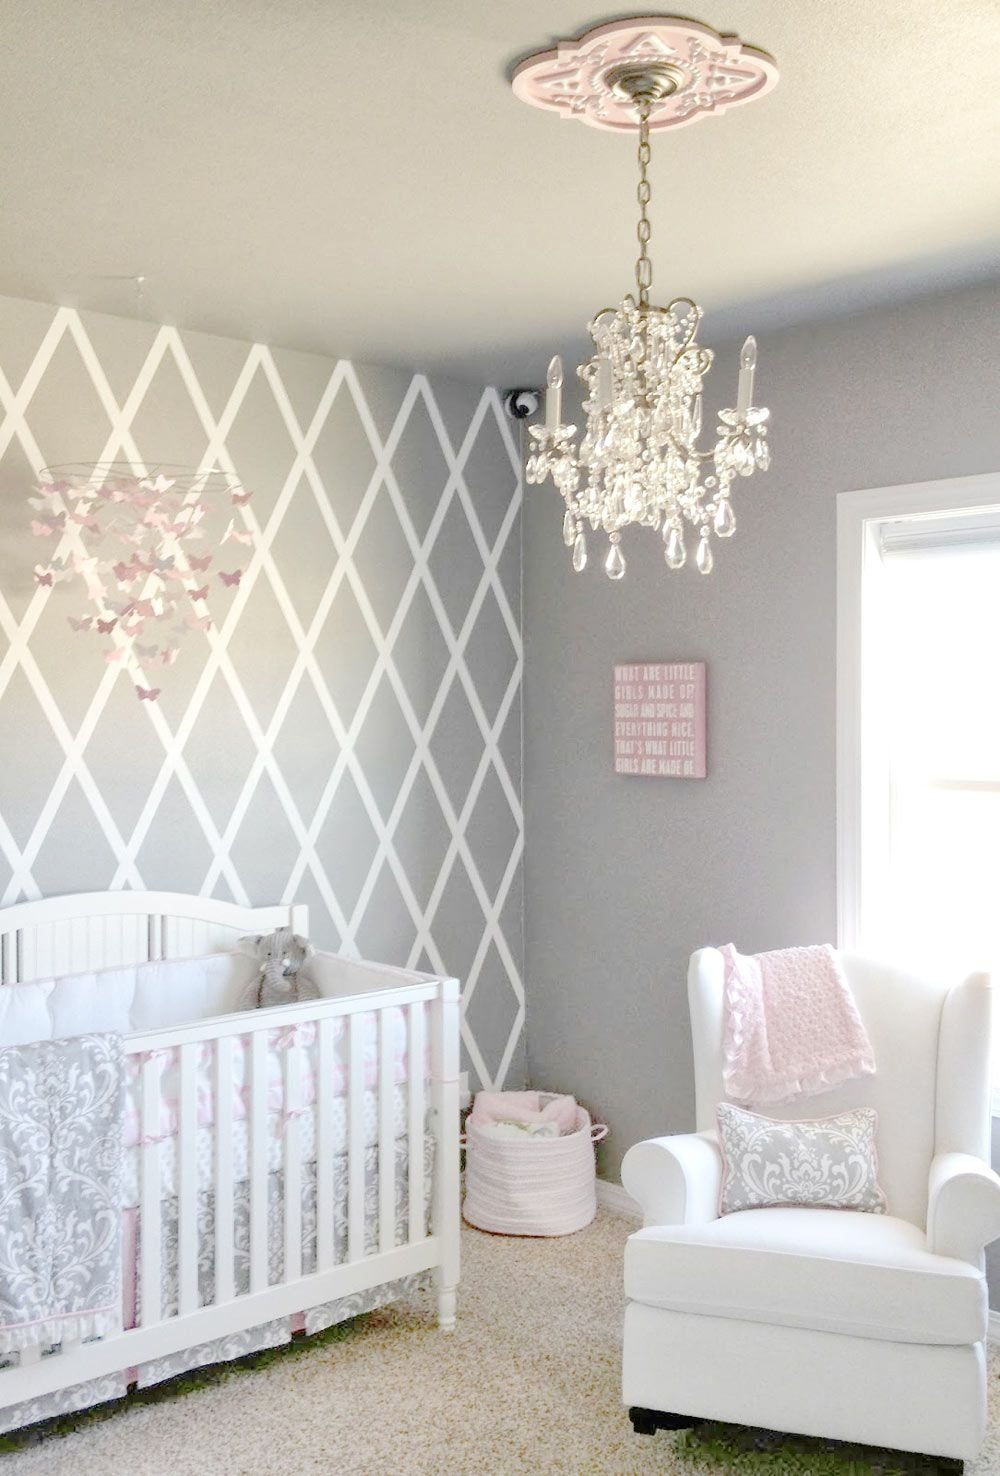 10 Ideal Baby Room Ideas For Girl pink and gray crib bedding sets baby girl nursery baby nursery 2